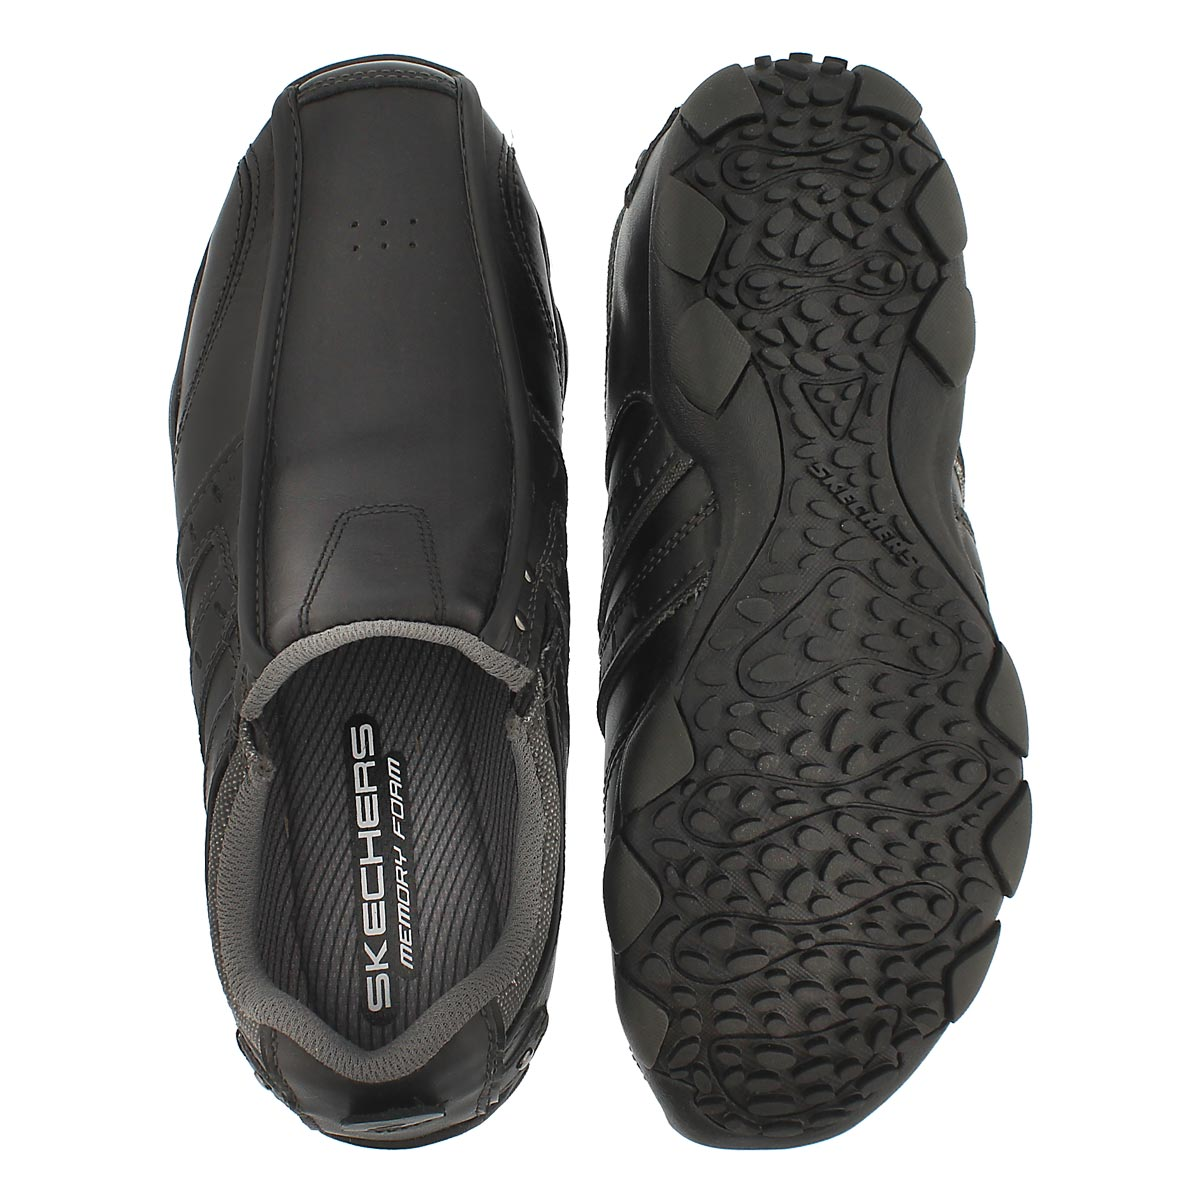 Mns Heisman black twin gore slip-on